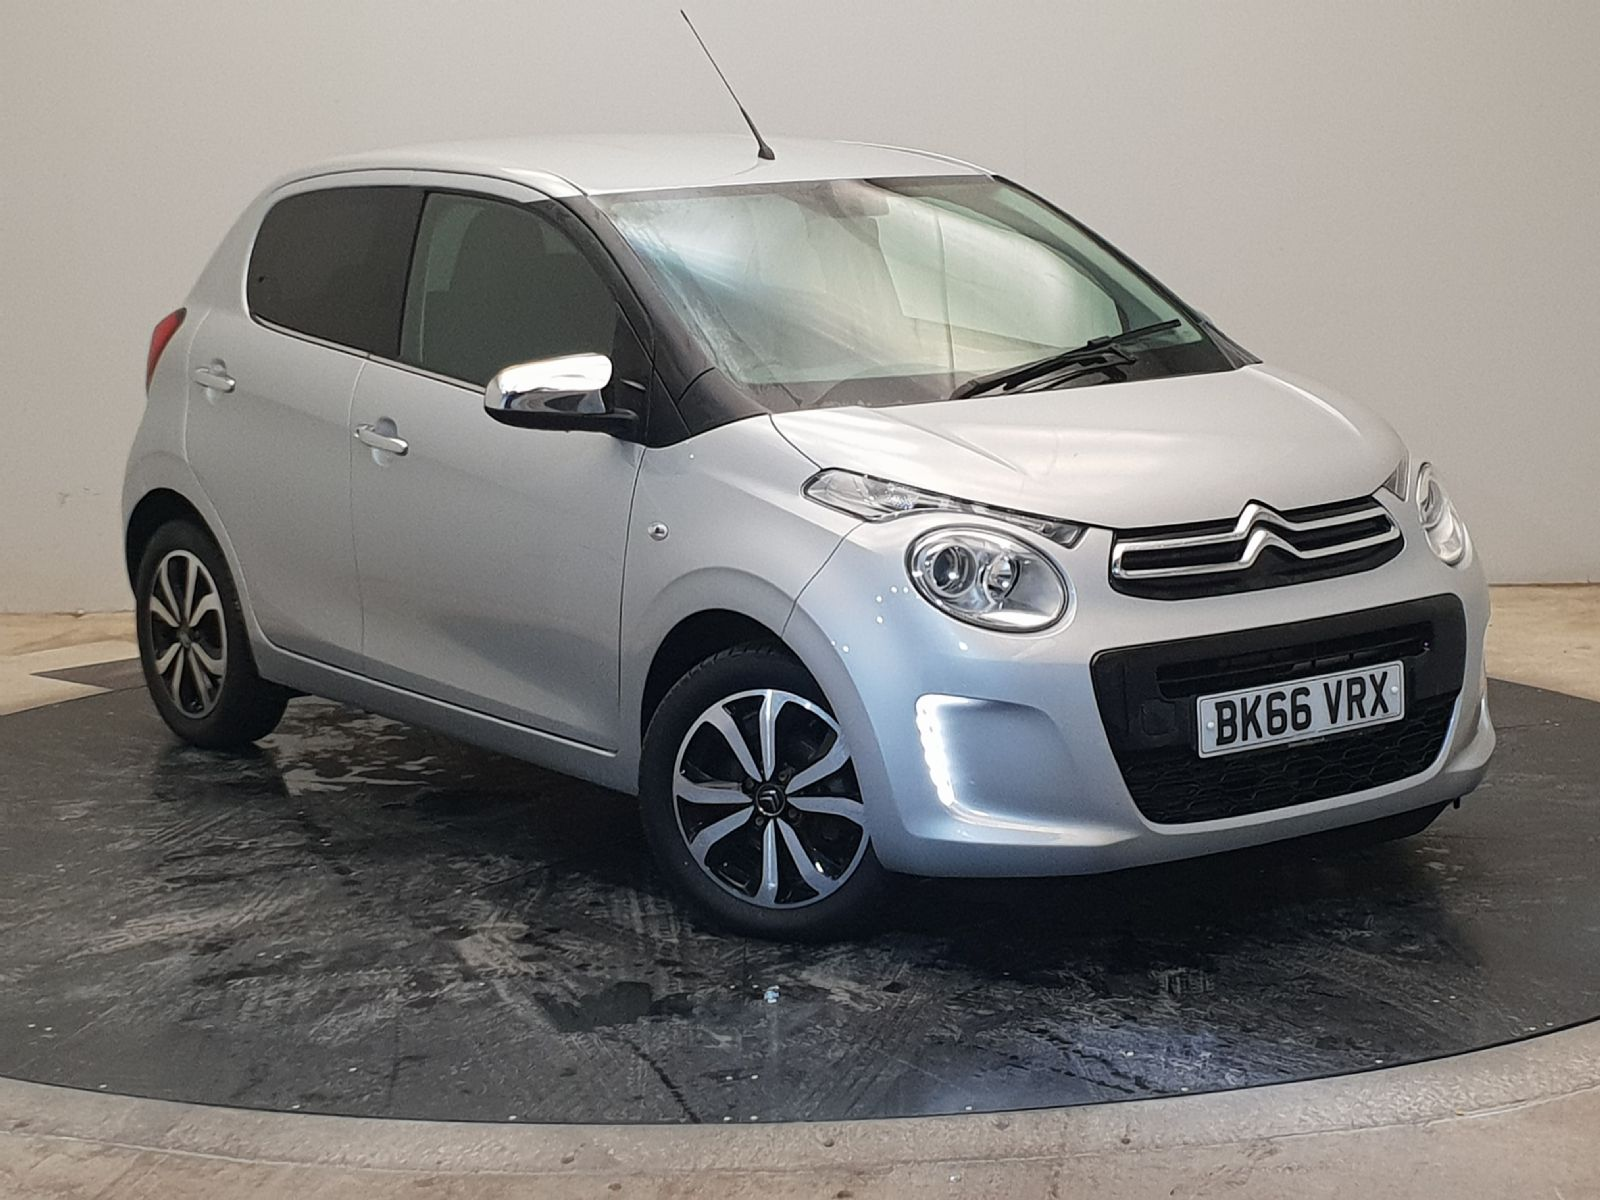 Citroen C1 Flair Review Citroen C1 Flair Automatic For Sale At Citroen Ireland